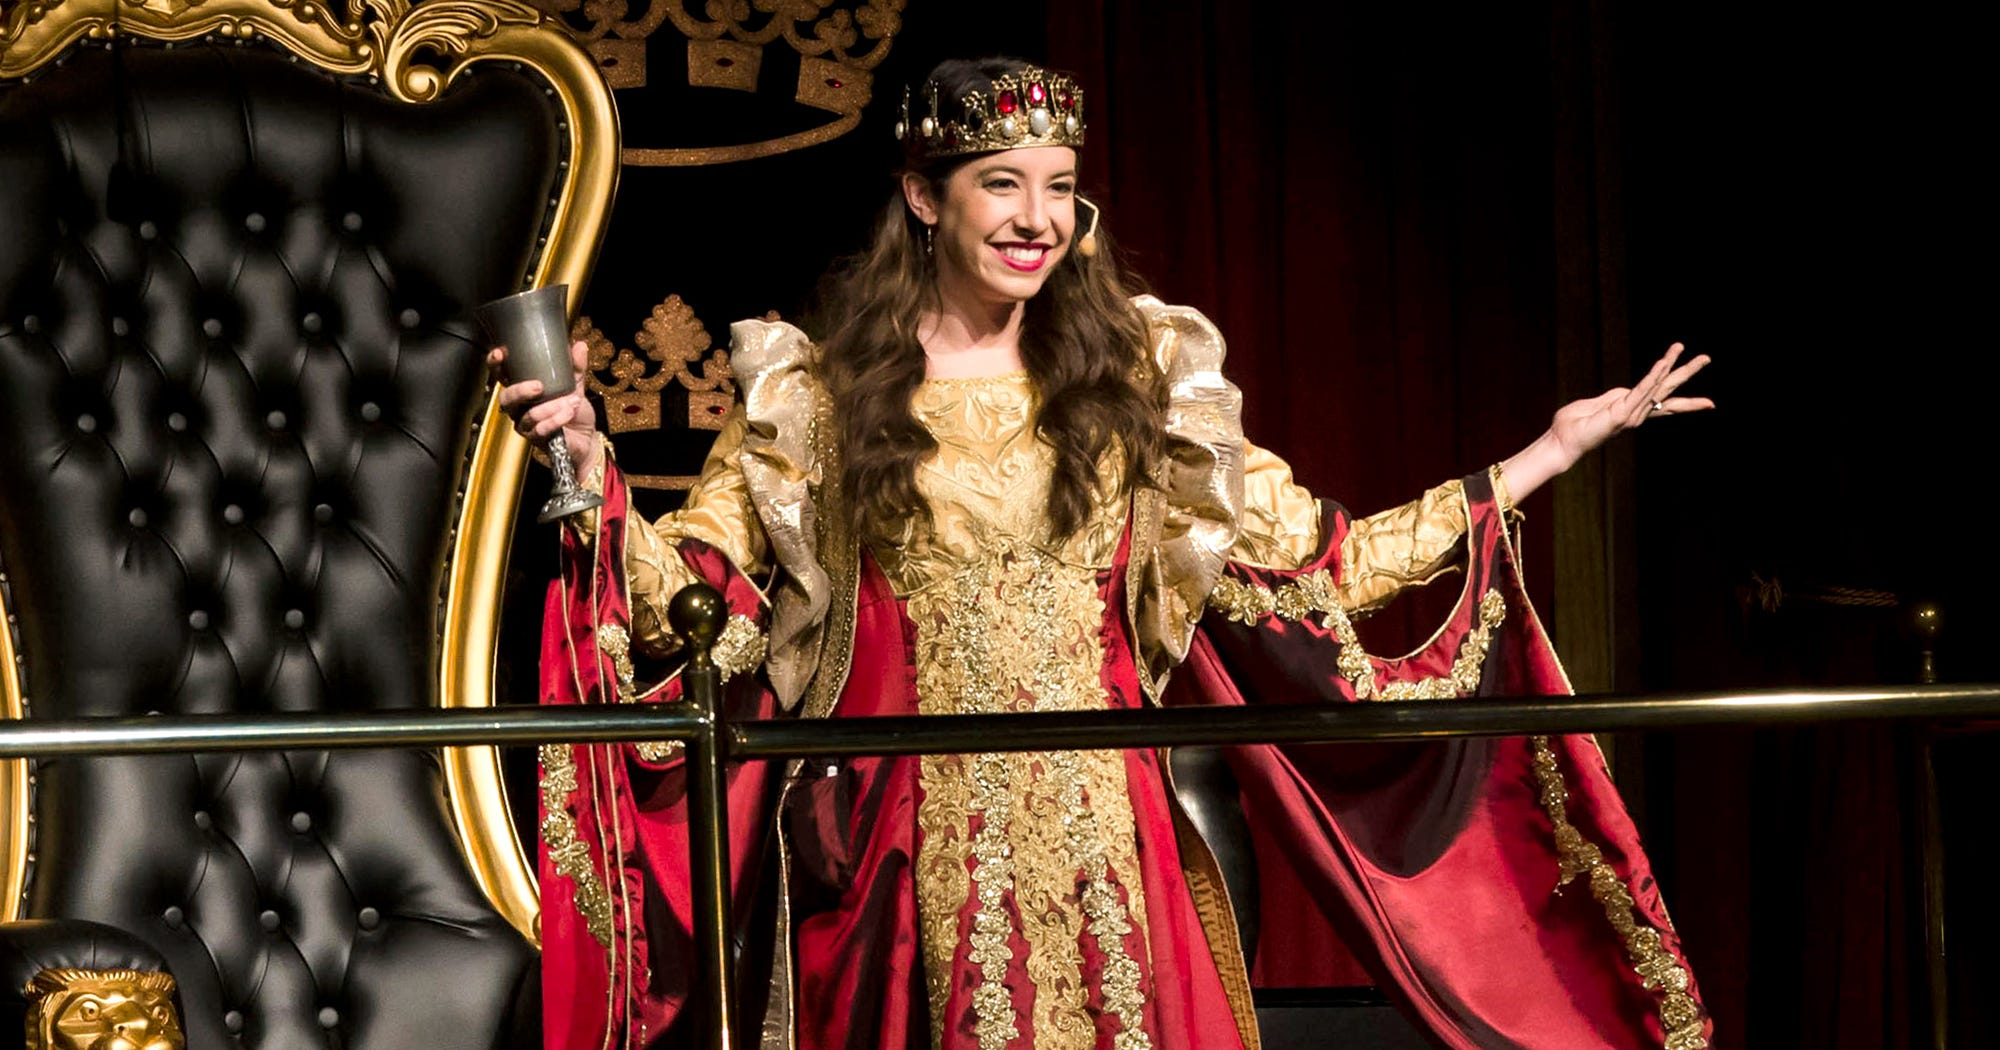 Medieval Times Catches Up With Gender Equity